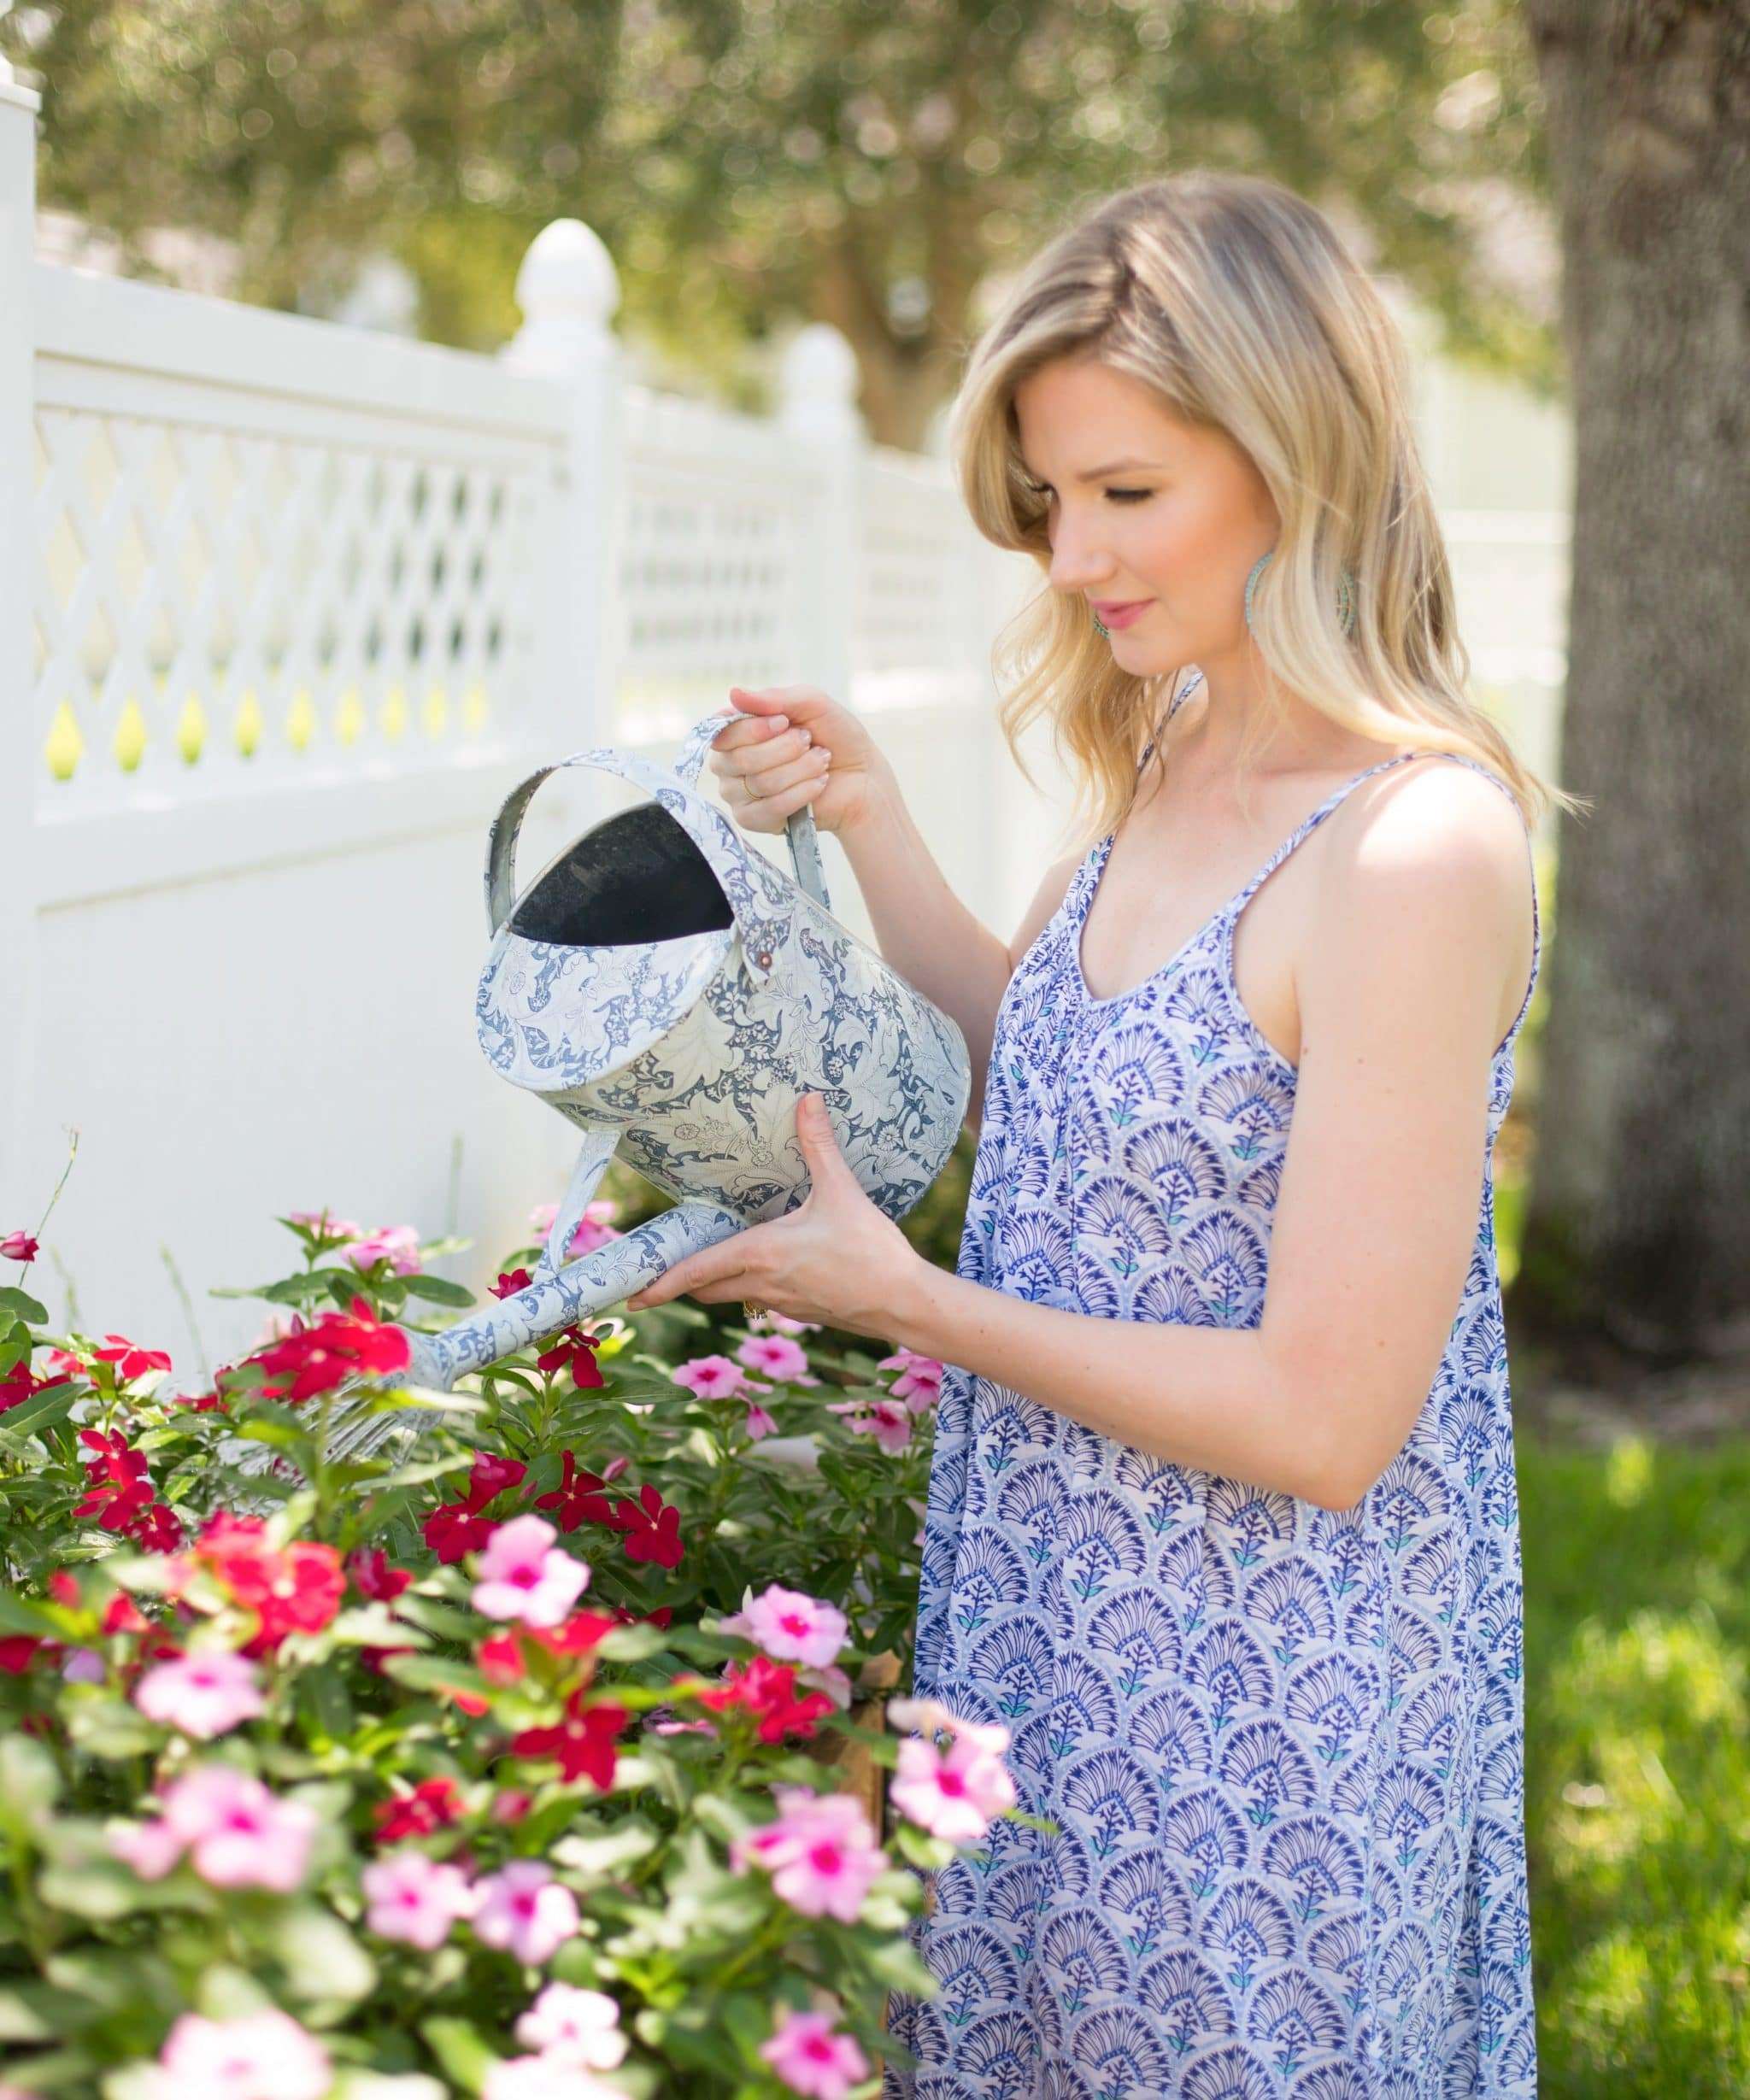 What to wear under tops, skirts, dresses, and shorts? Blogger Ashley Brooke spills her secrets! | www.ashleybrookedesigns.com